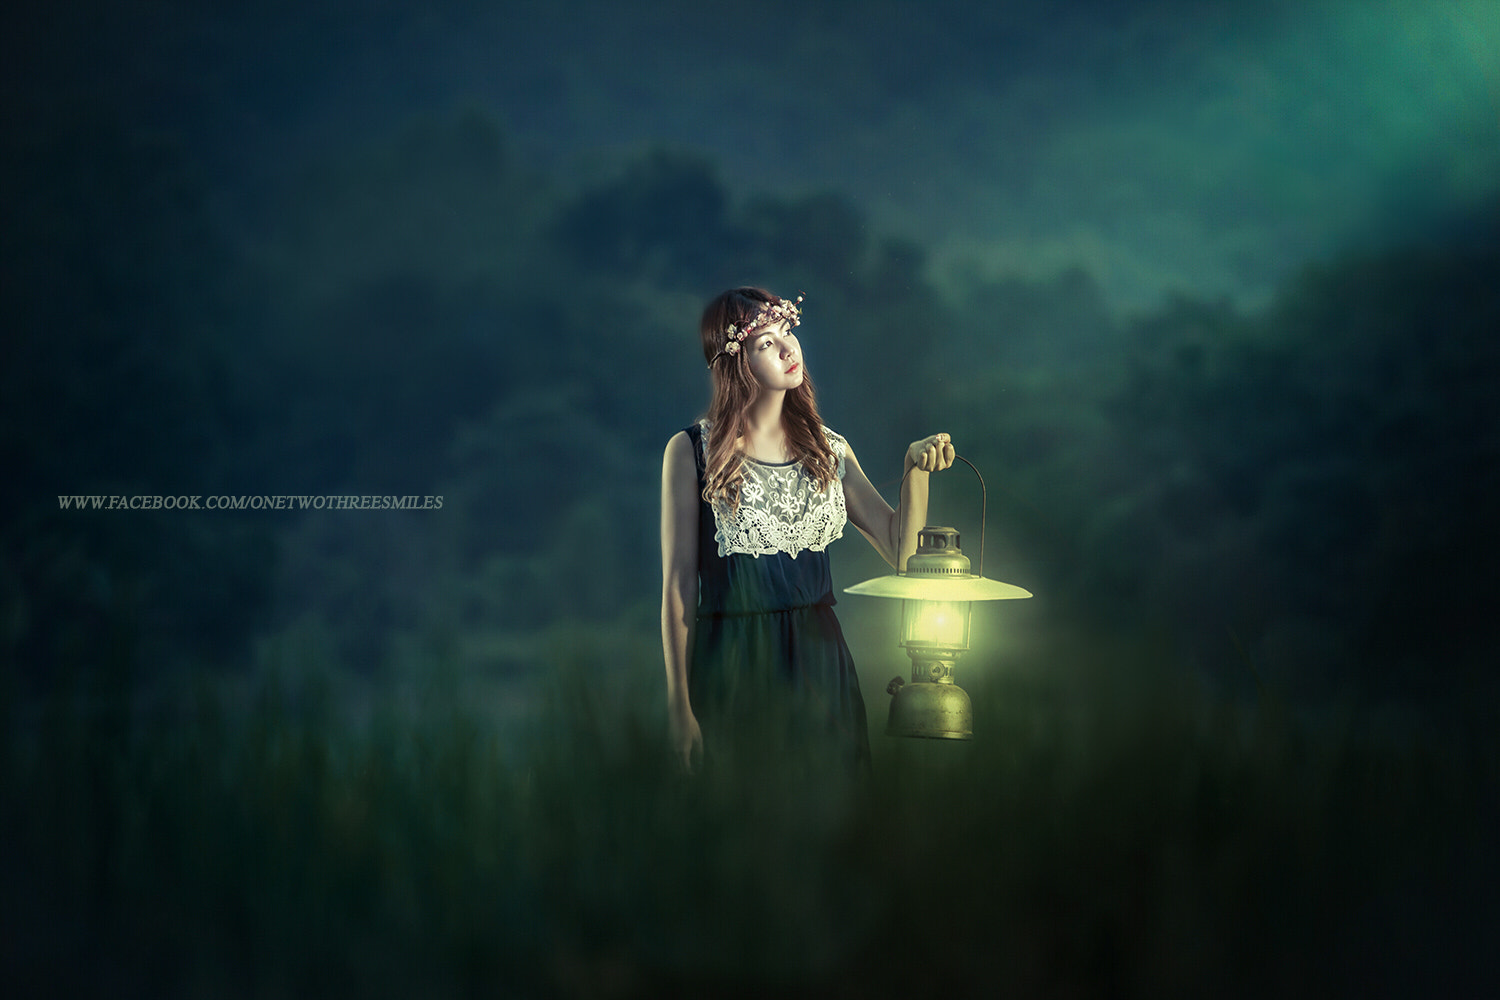 Photograph Woman with the lantern by Chao Pavit on 500px